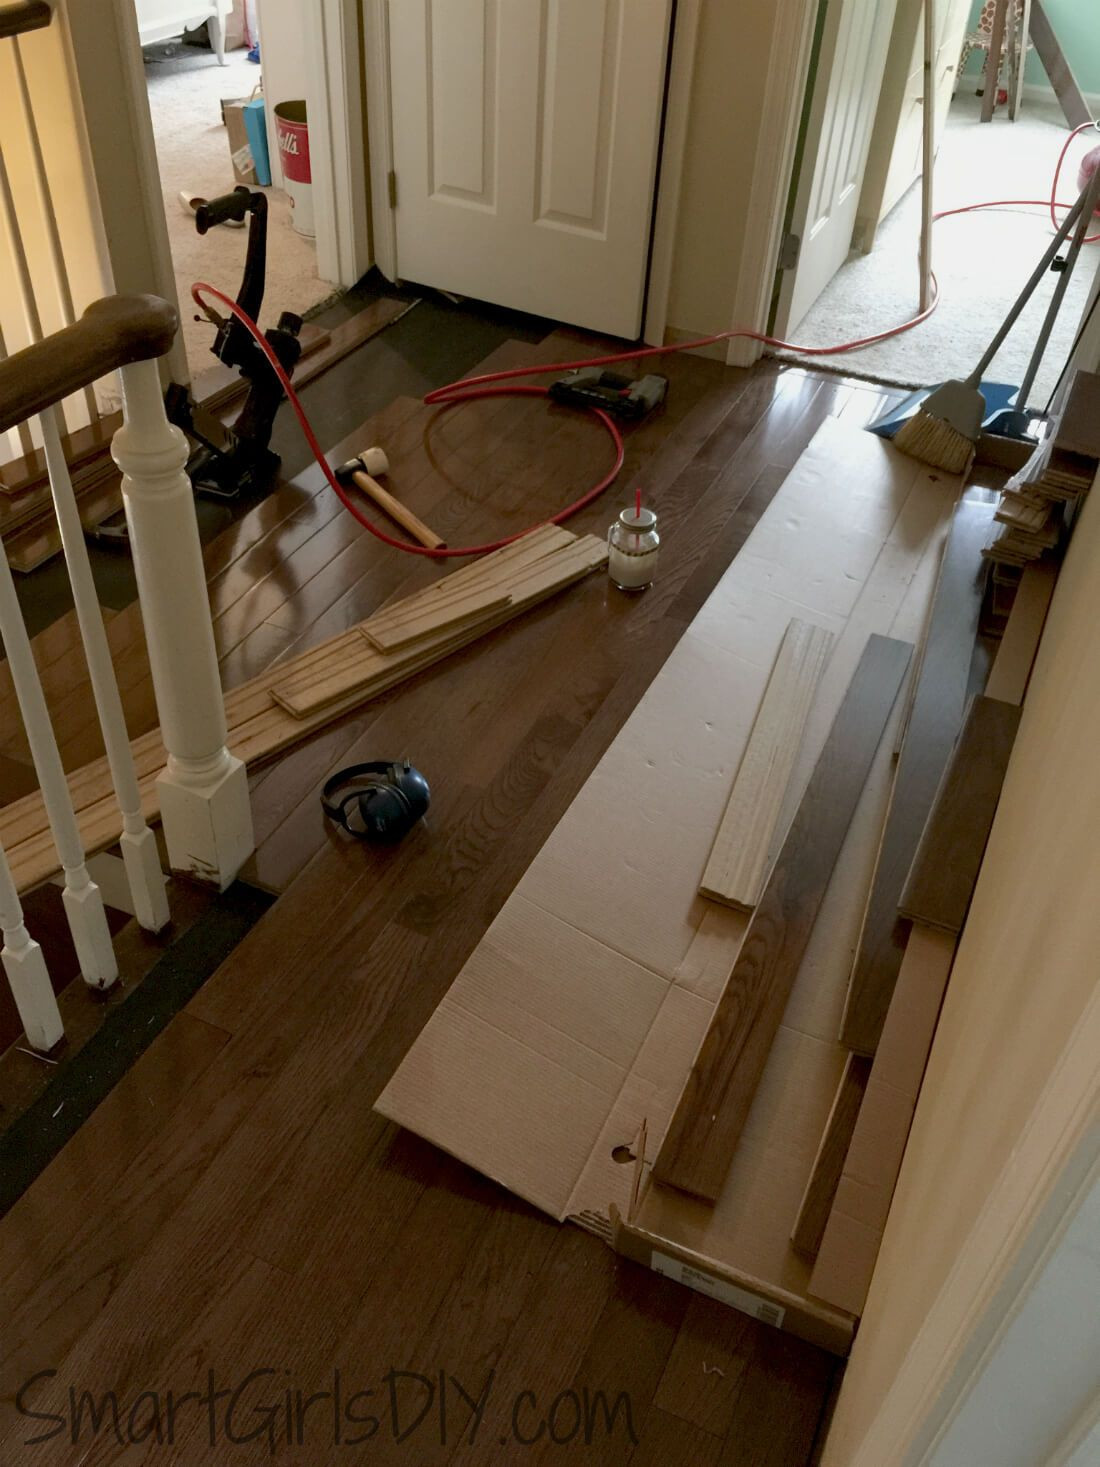 Nail Gun for Hardwood Floor Installation Of Upstairs Hallway 1 Installing Hardwood Floors Inside How to Install Hardwood Floor All by Yourself